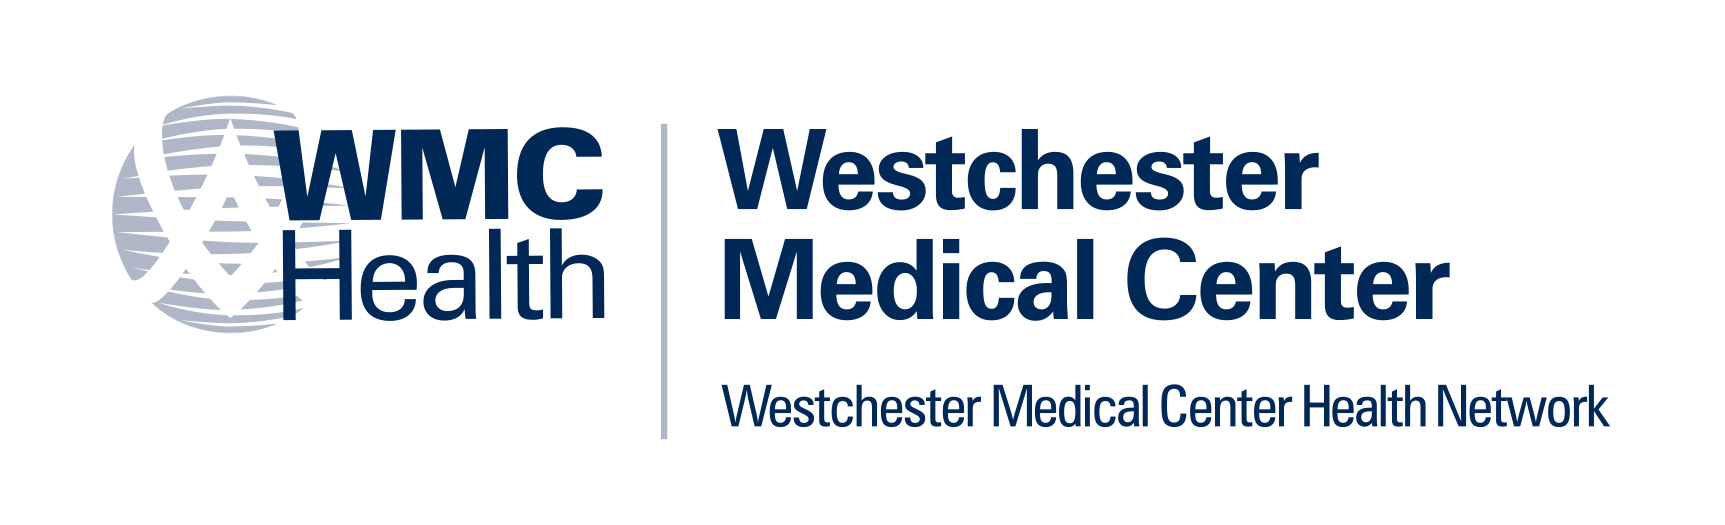 westchester medical new logo